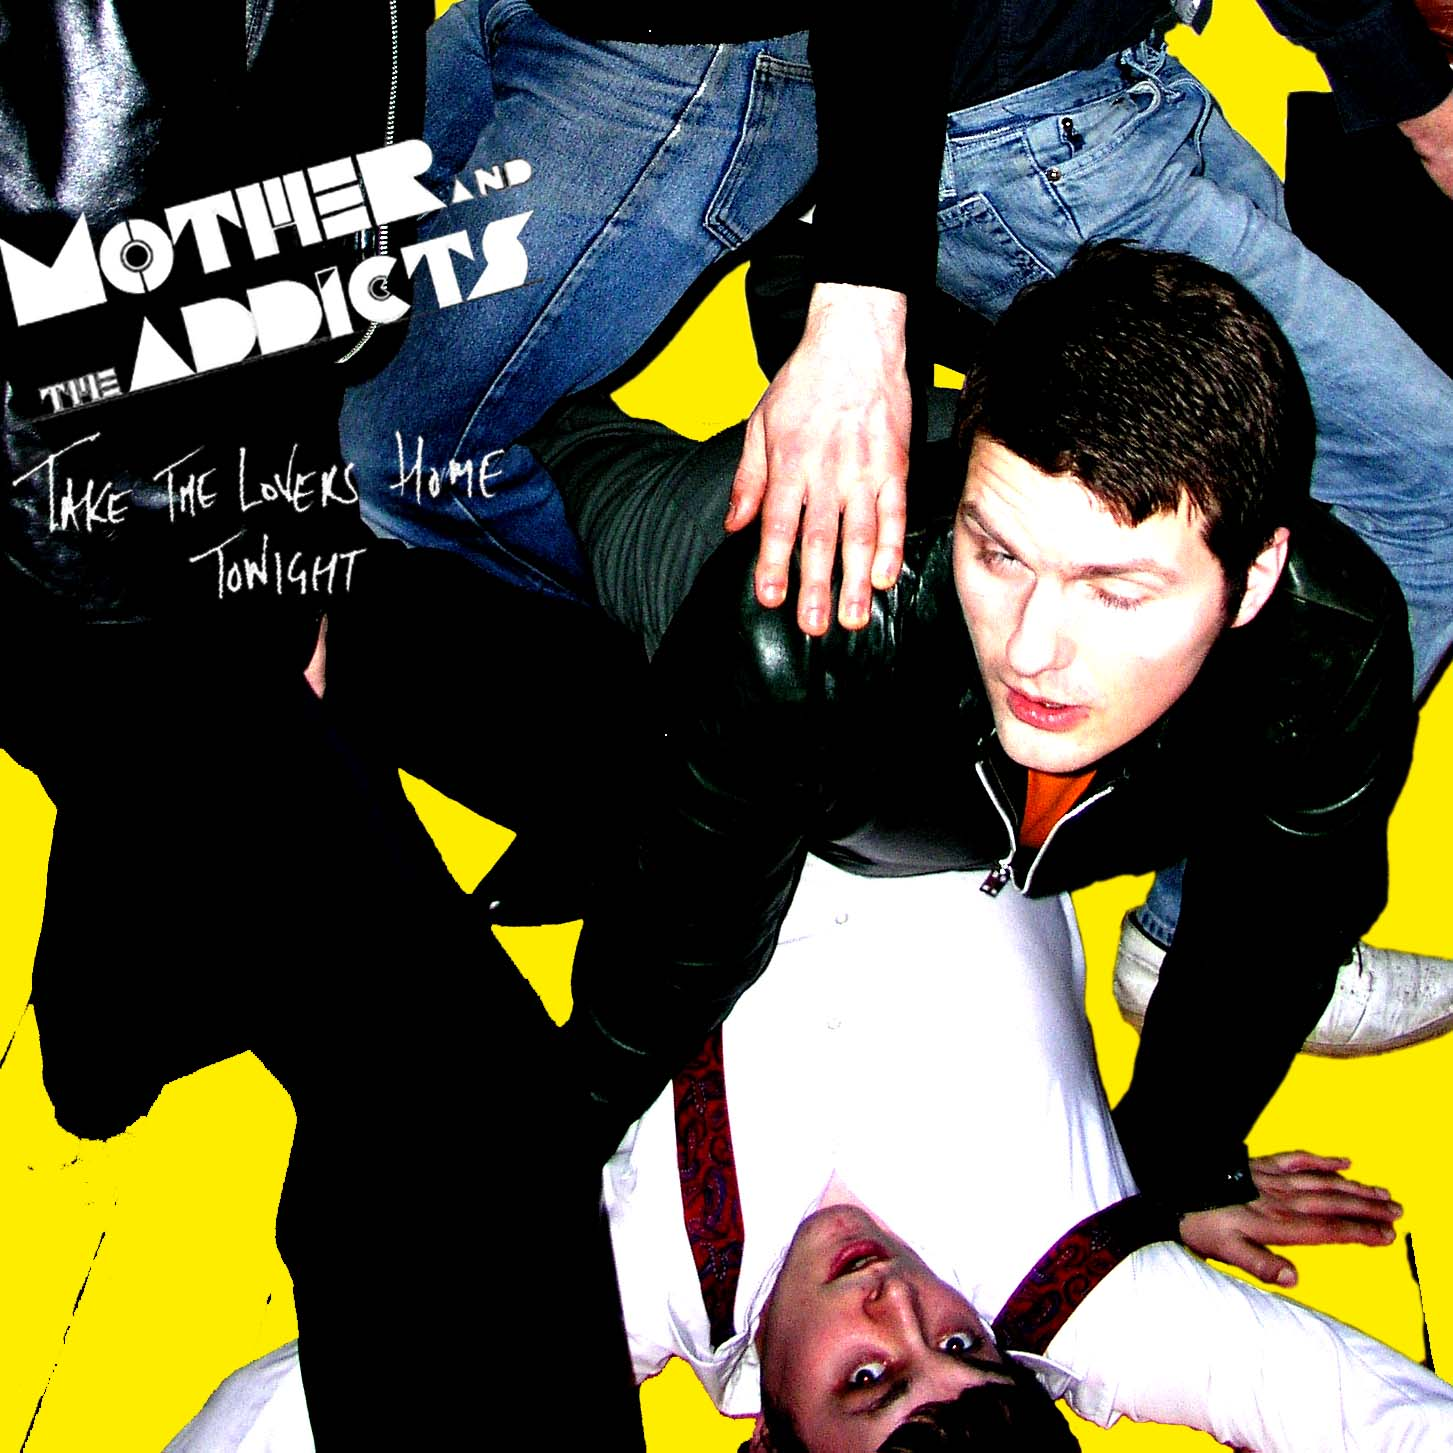 Mother And The Addicts - Take The Lovers Home Tonight - CD Album (2005) - Mother And The Addicts